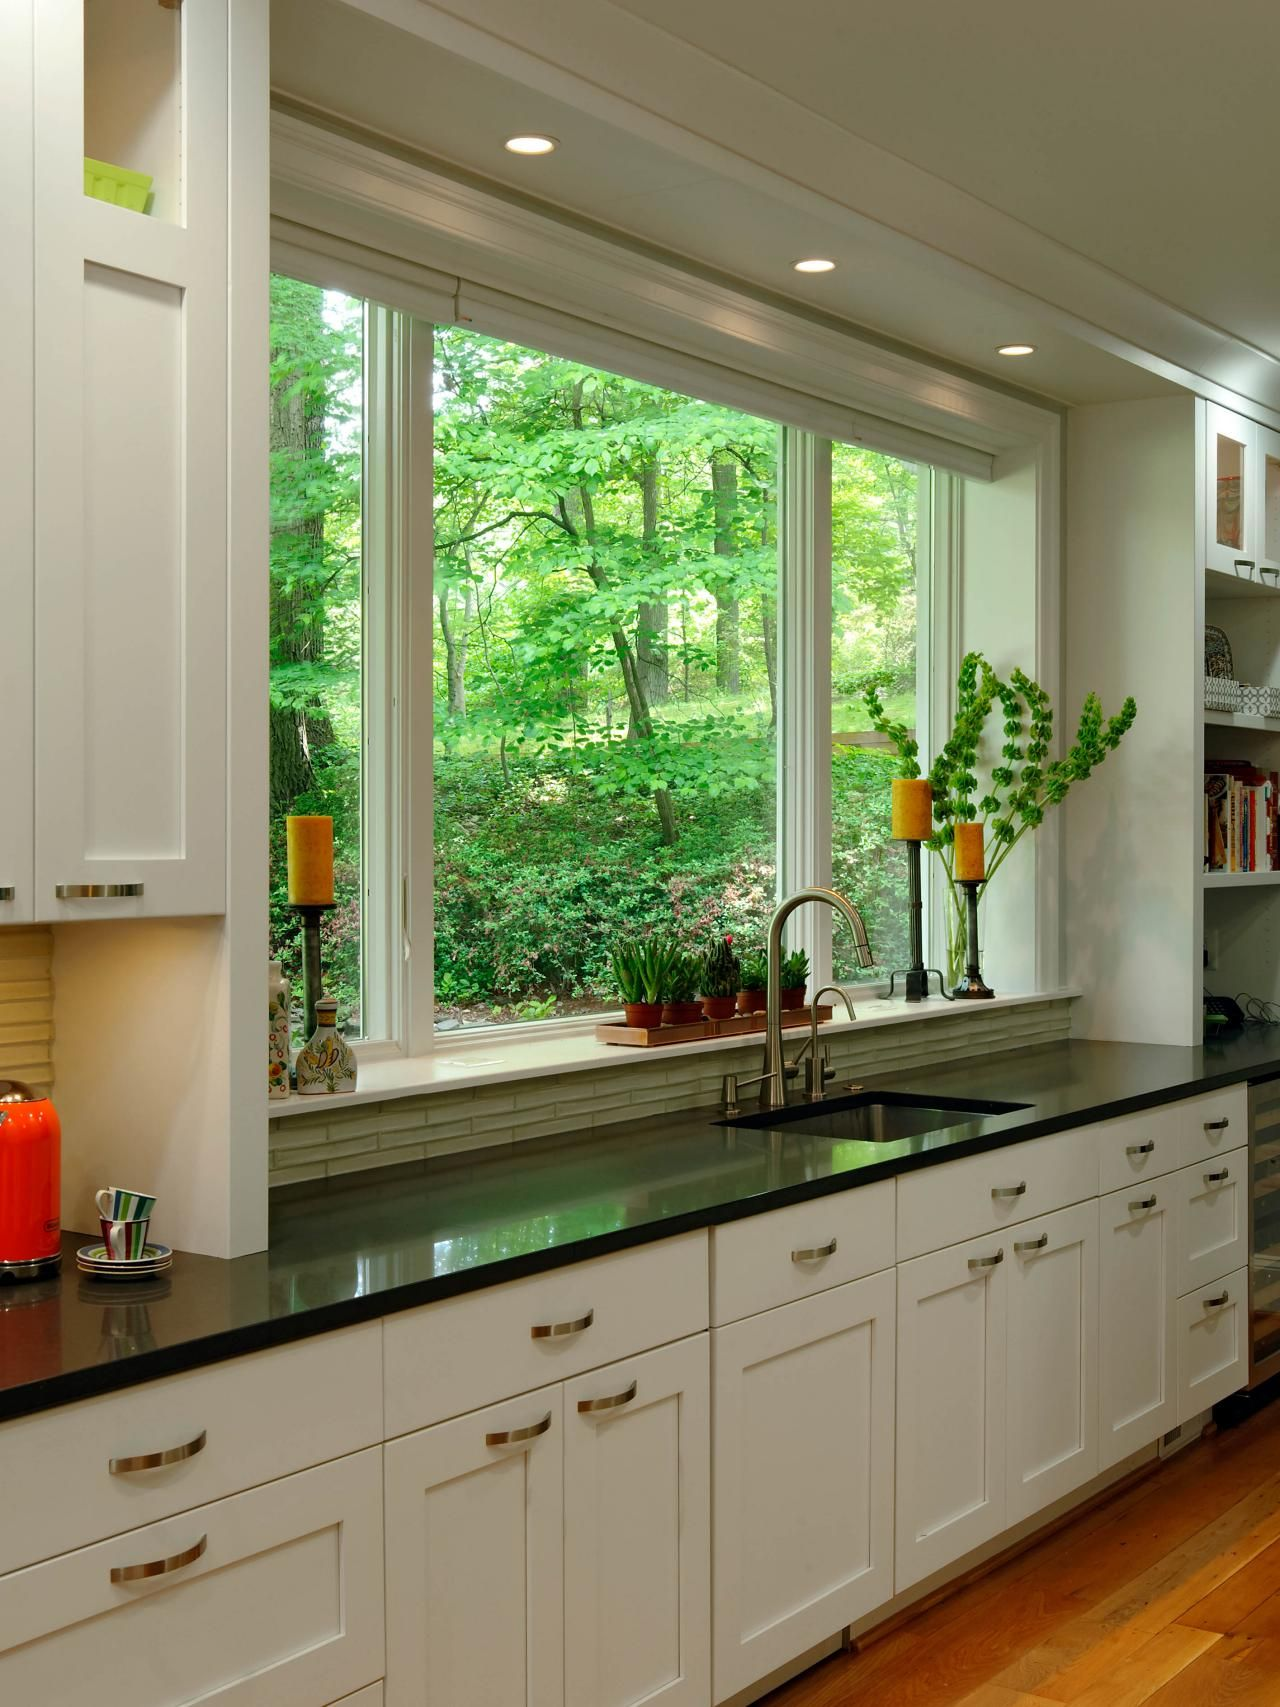 Large Kitchen Windows Pictures Ideas Tips From Hgtv Kitchen Window Design Beautiful Kitchens Kitchen